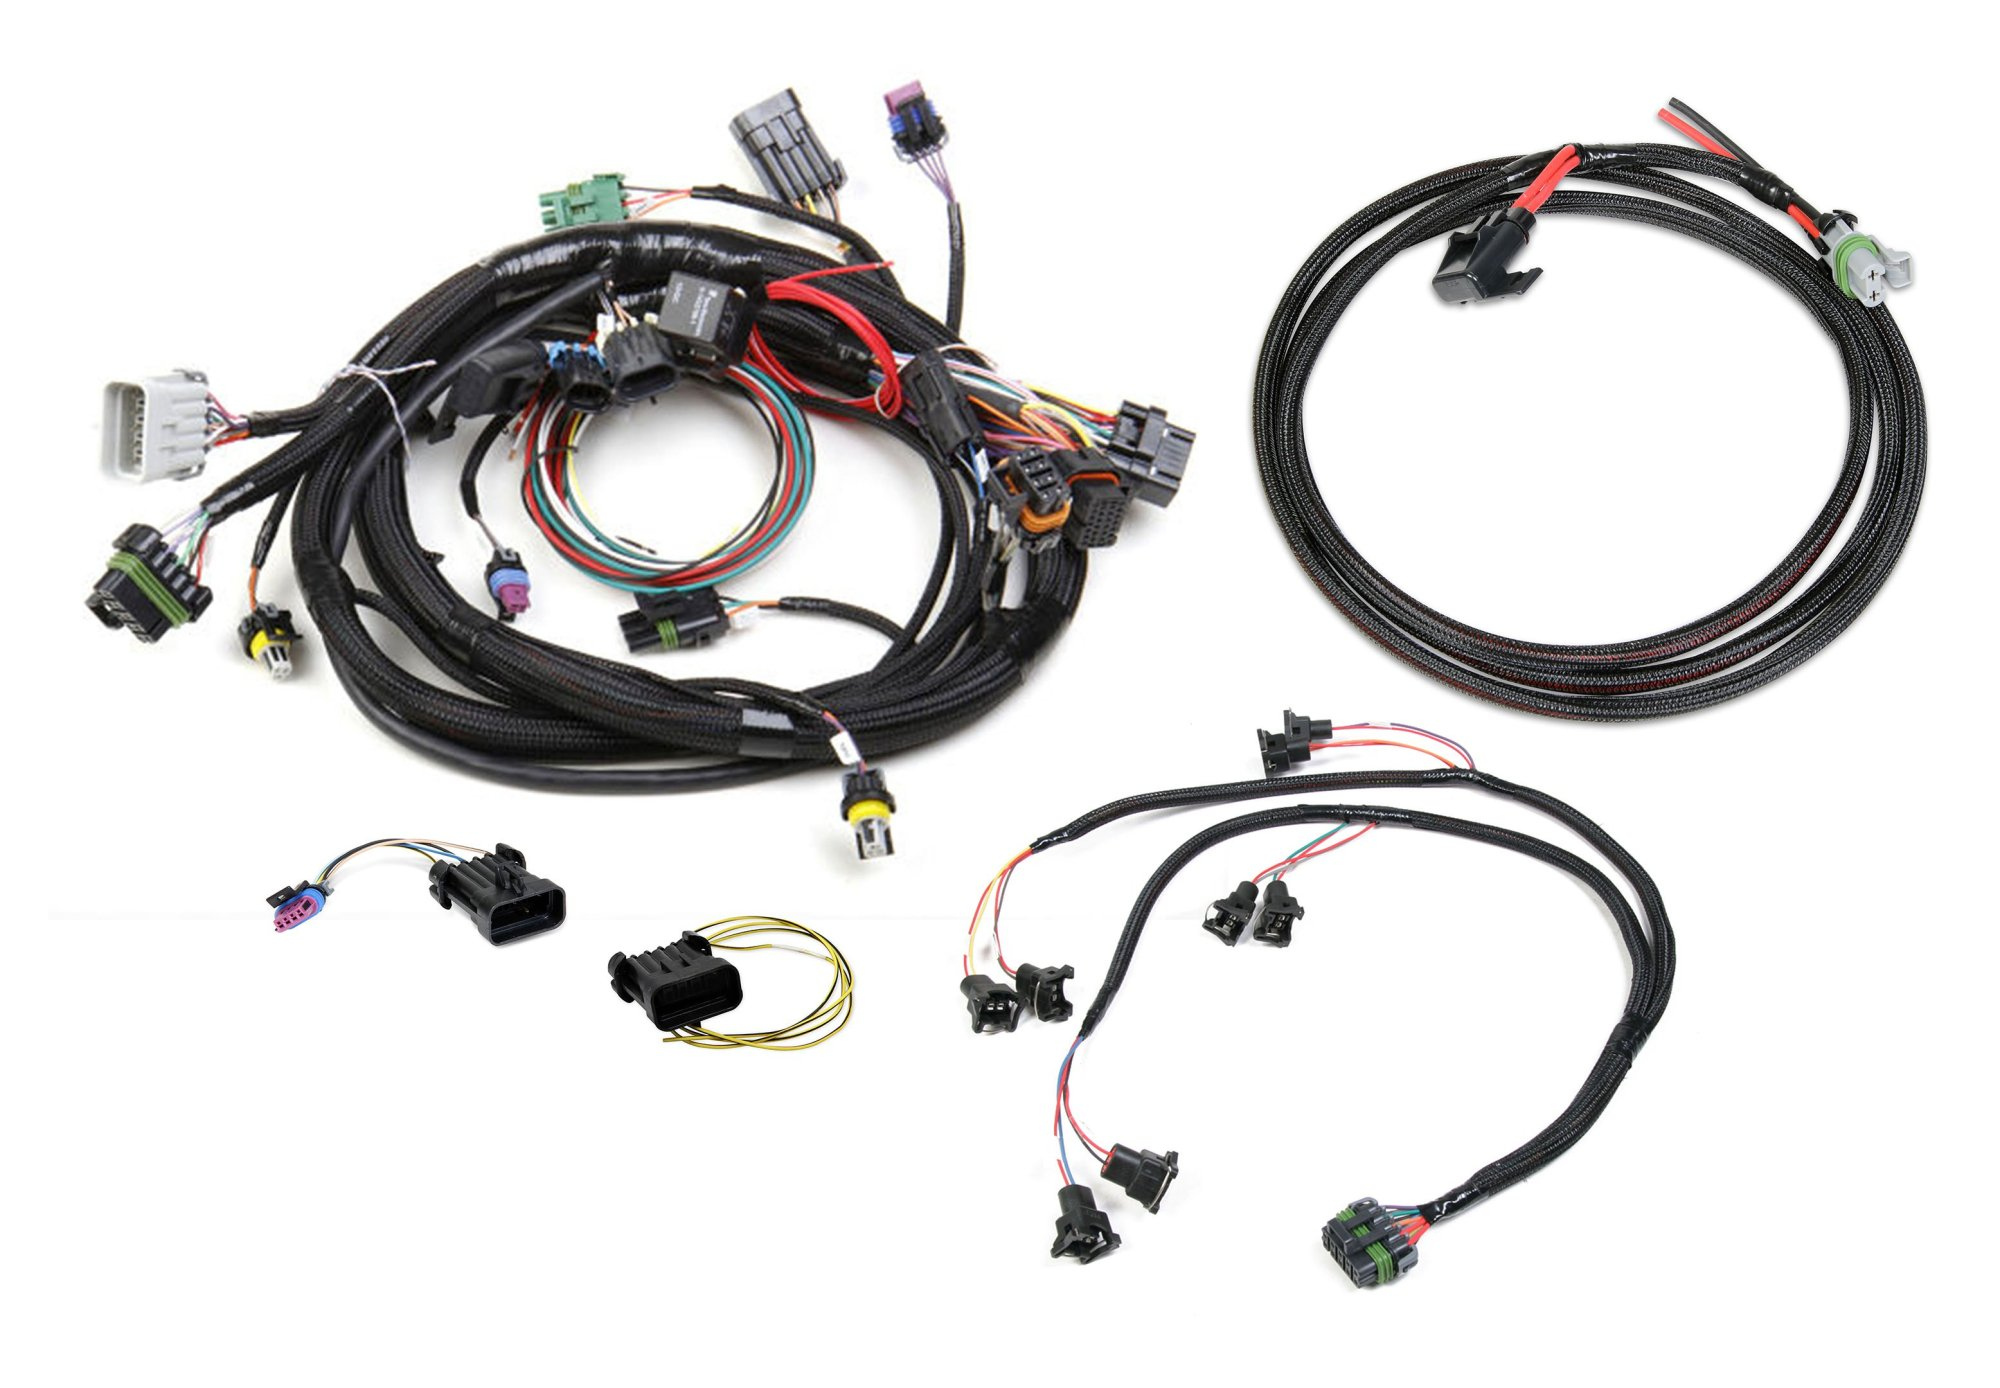 hight resolution of 558 503 gm tpi and stealth ram efi harness kit image